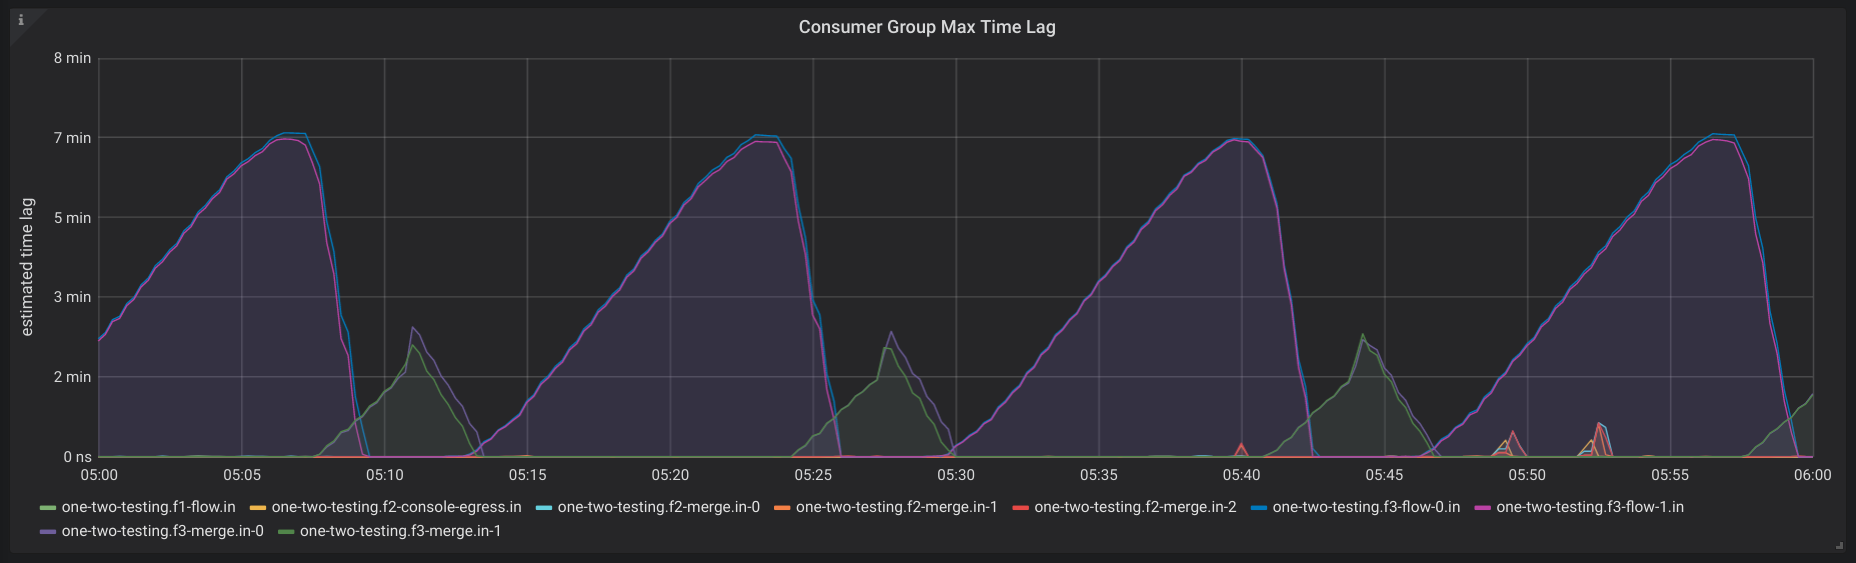 Consumer Group Max Time Lag